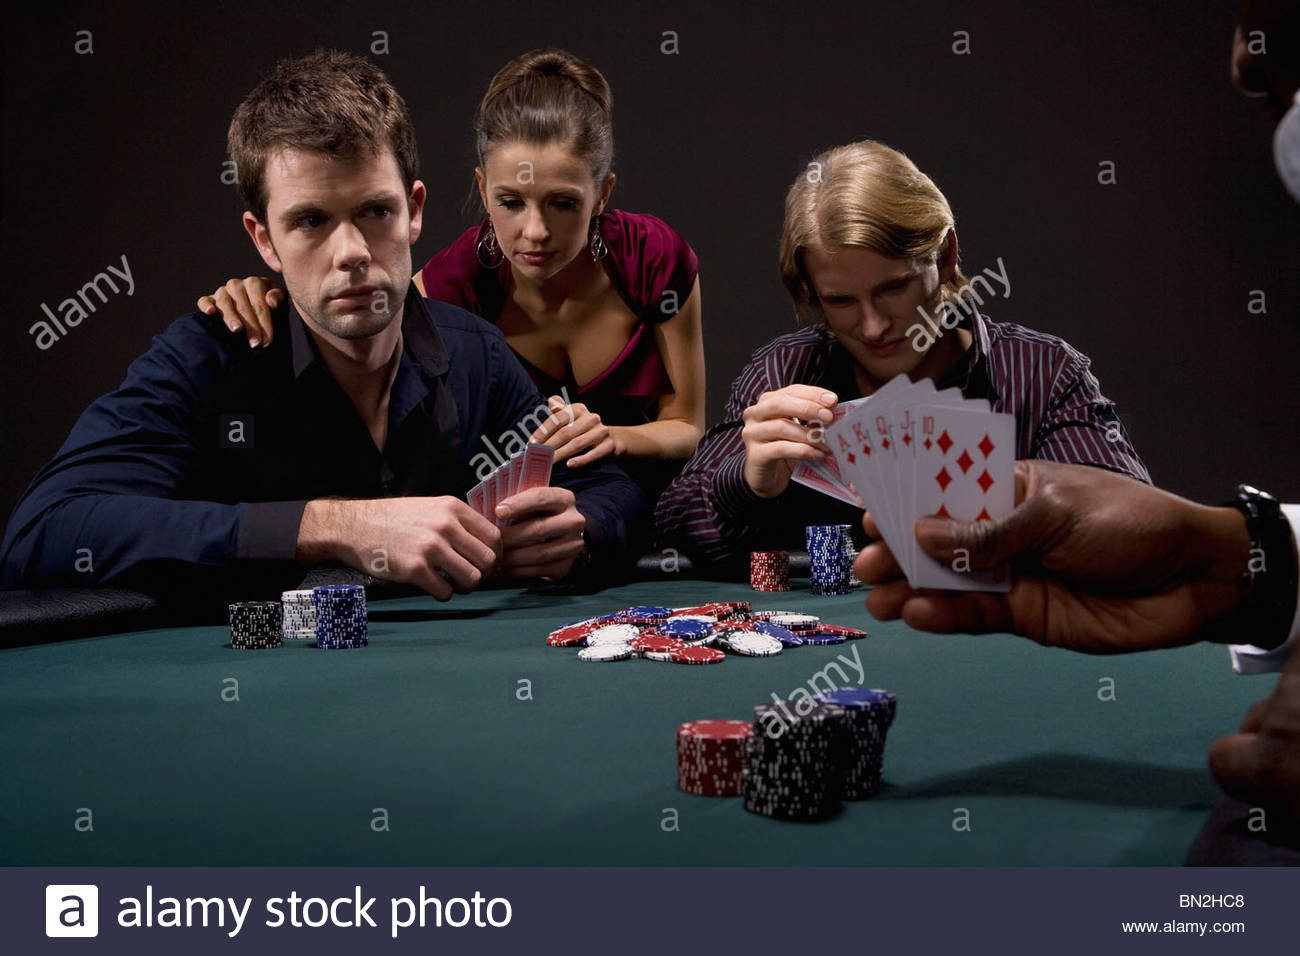 People playing poker in casino - Stock Image